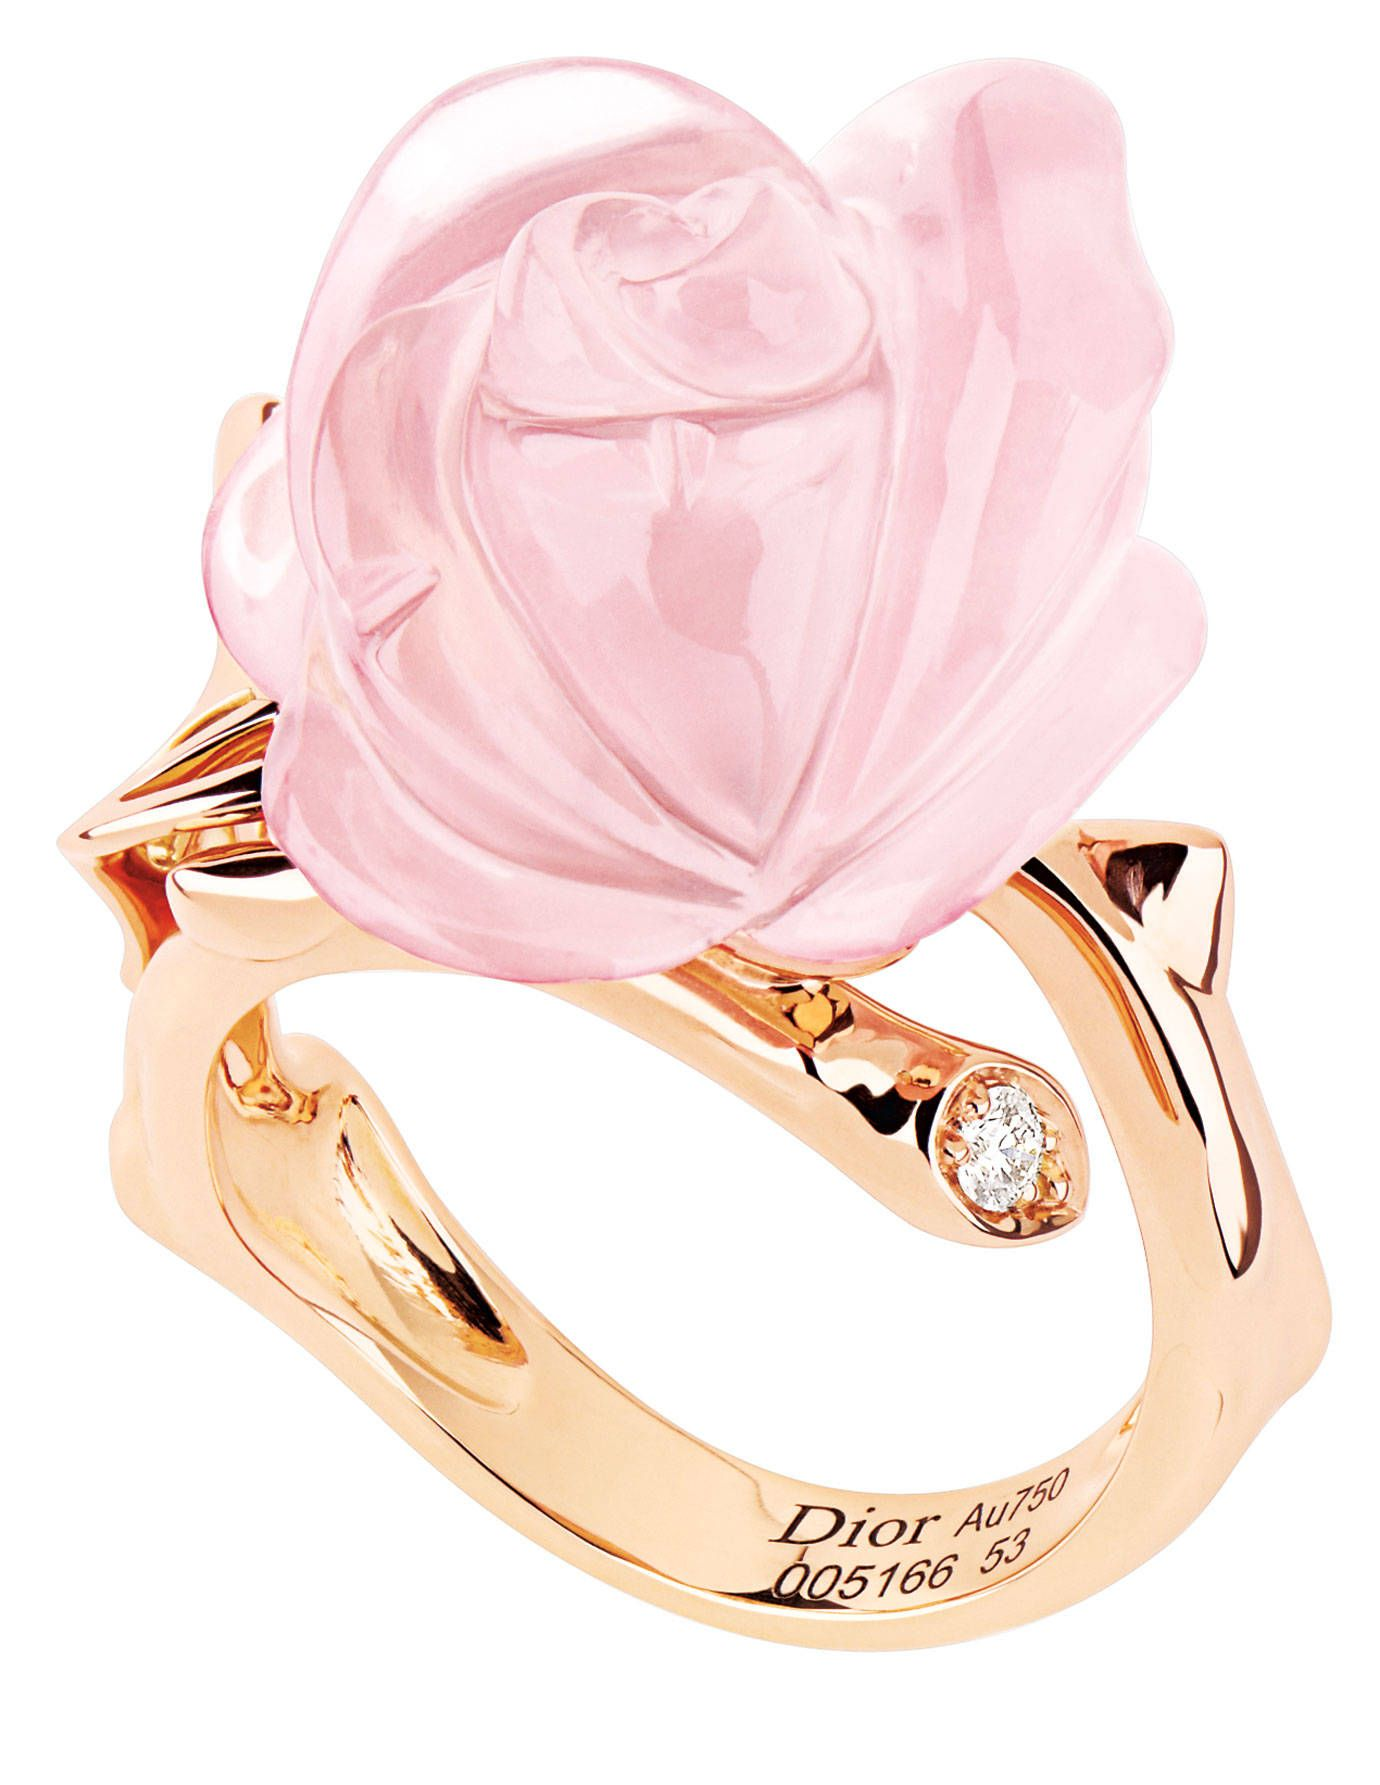 Designer Jewelry Collections - Fashion Designers in the Jewelry Industry